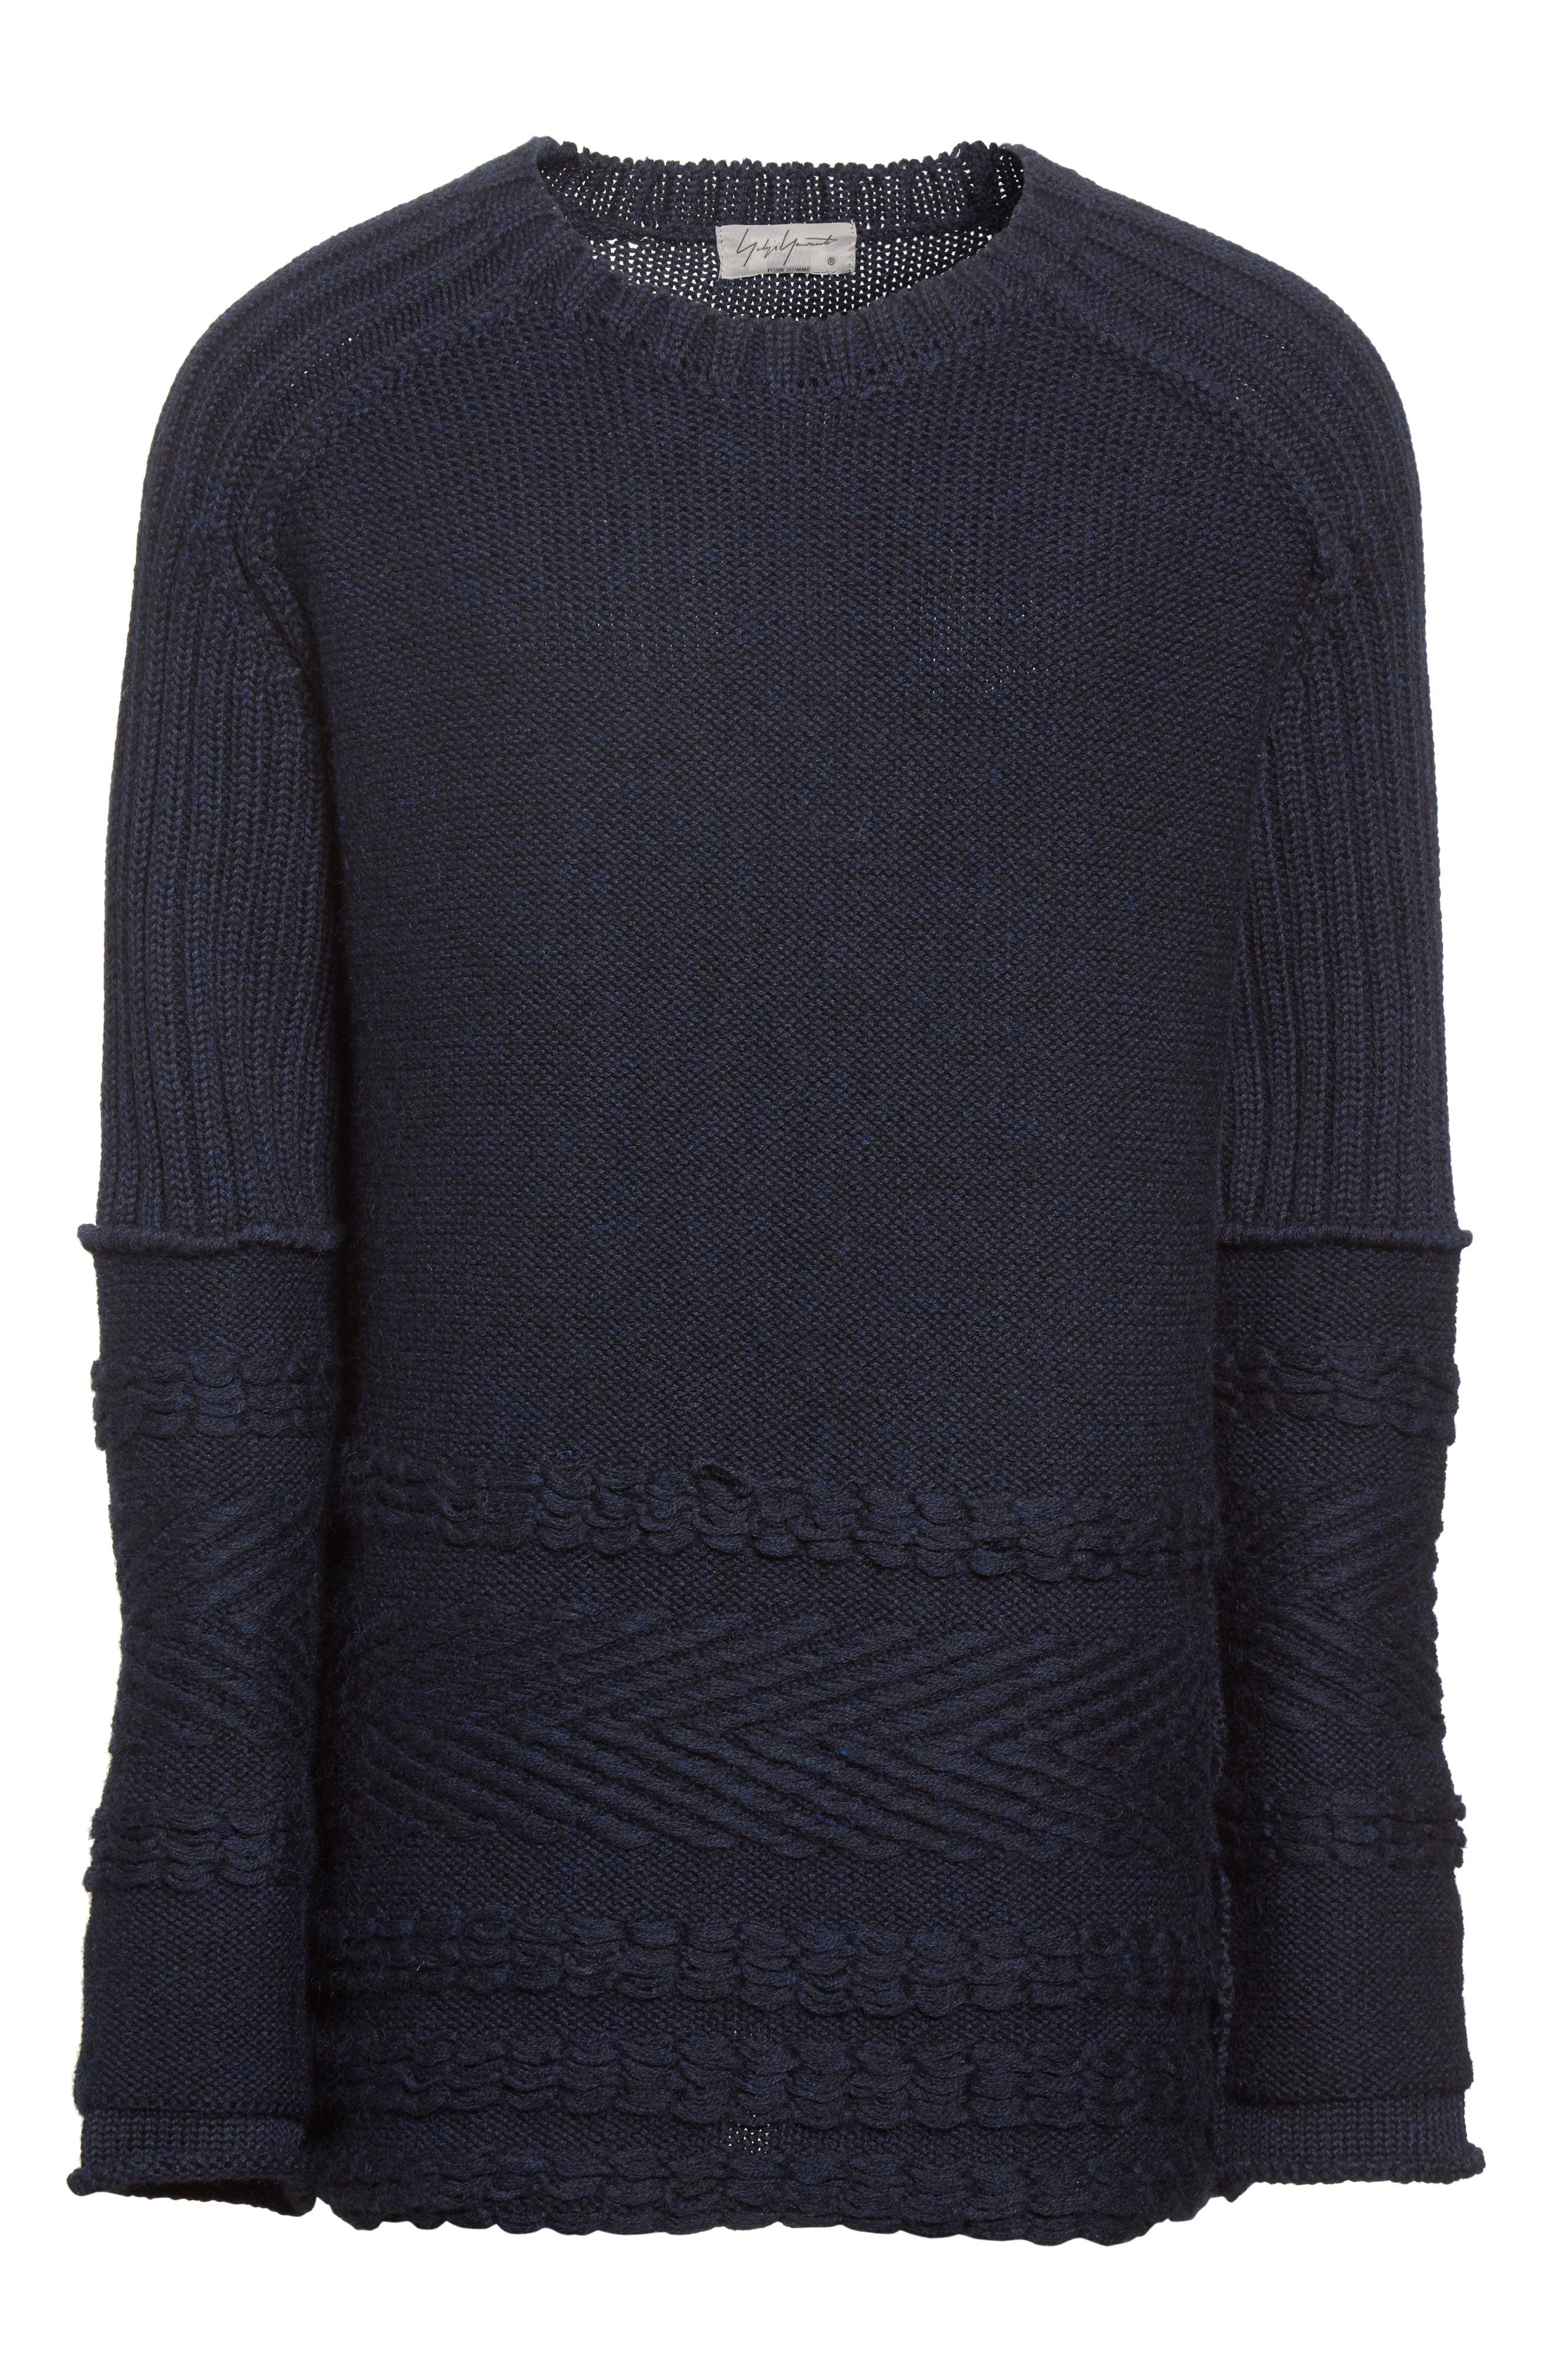 Mixed Knit Wool Sweater,                             Alternate thumbnail 6, color,                             Navy